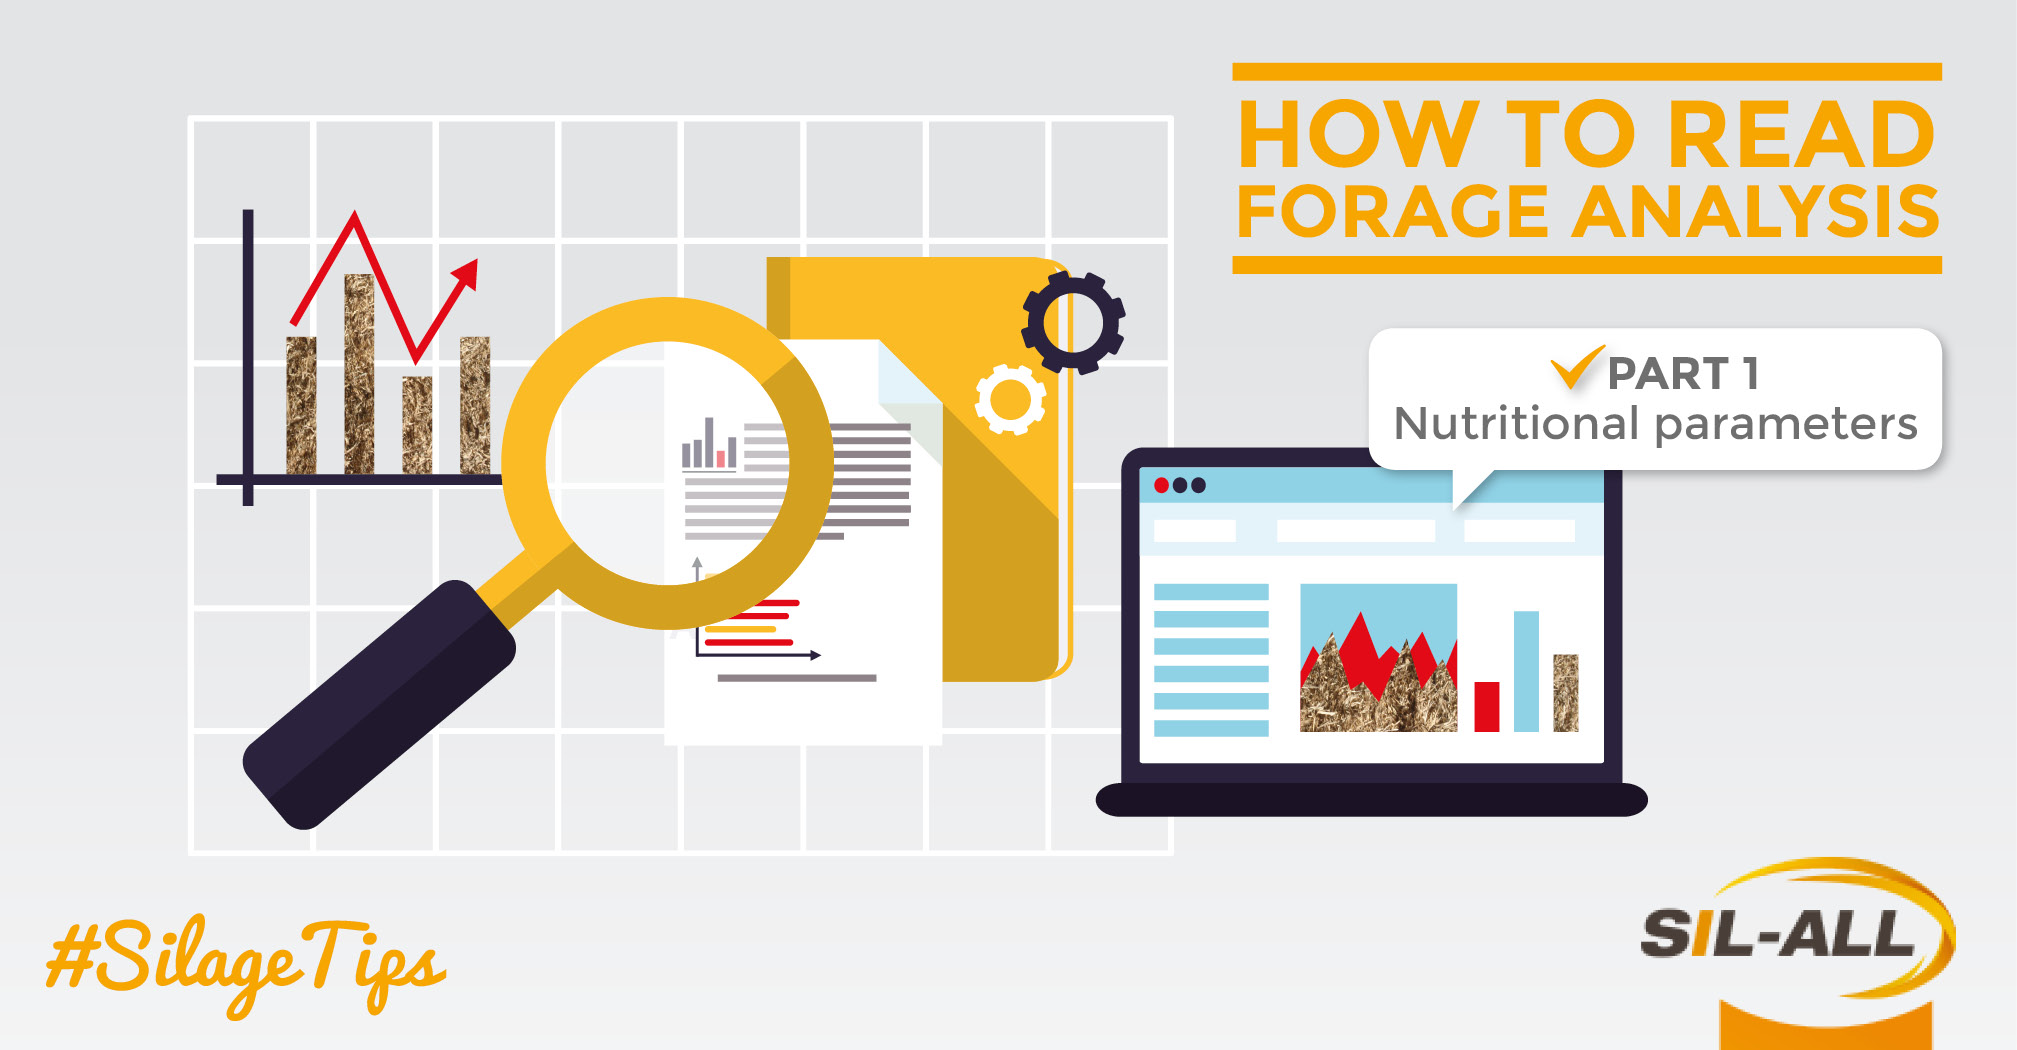 How to read a forage analysis / PART 1: Nutritional parameters